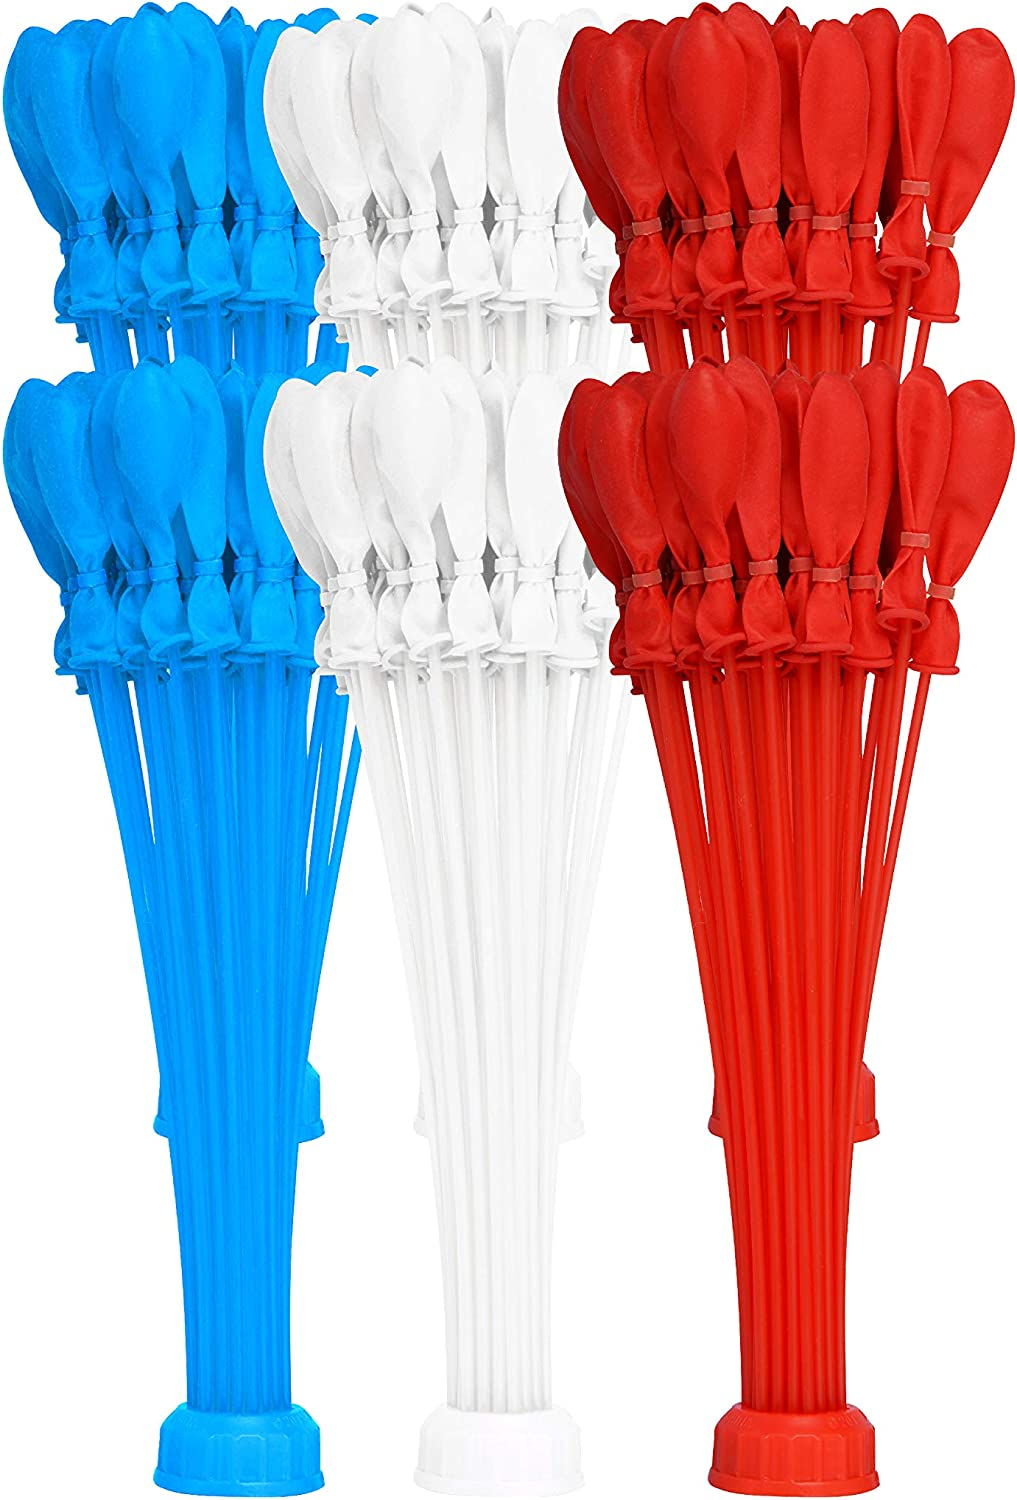 Bunch O Balloons Rapid-Filling Red, White and Blue Water Balloons 6 Pack (180 Balloons) (Amazon Exclusive)